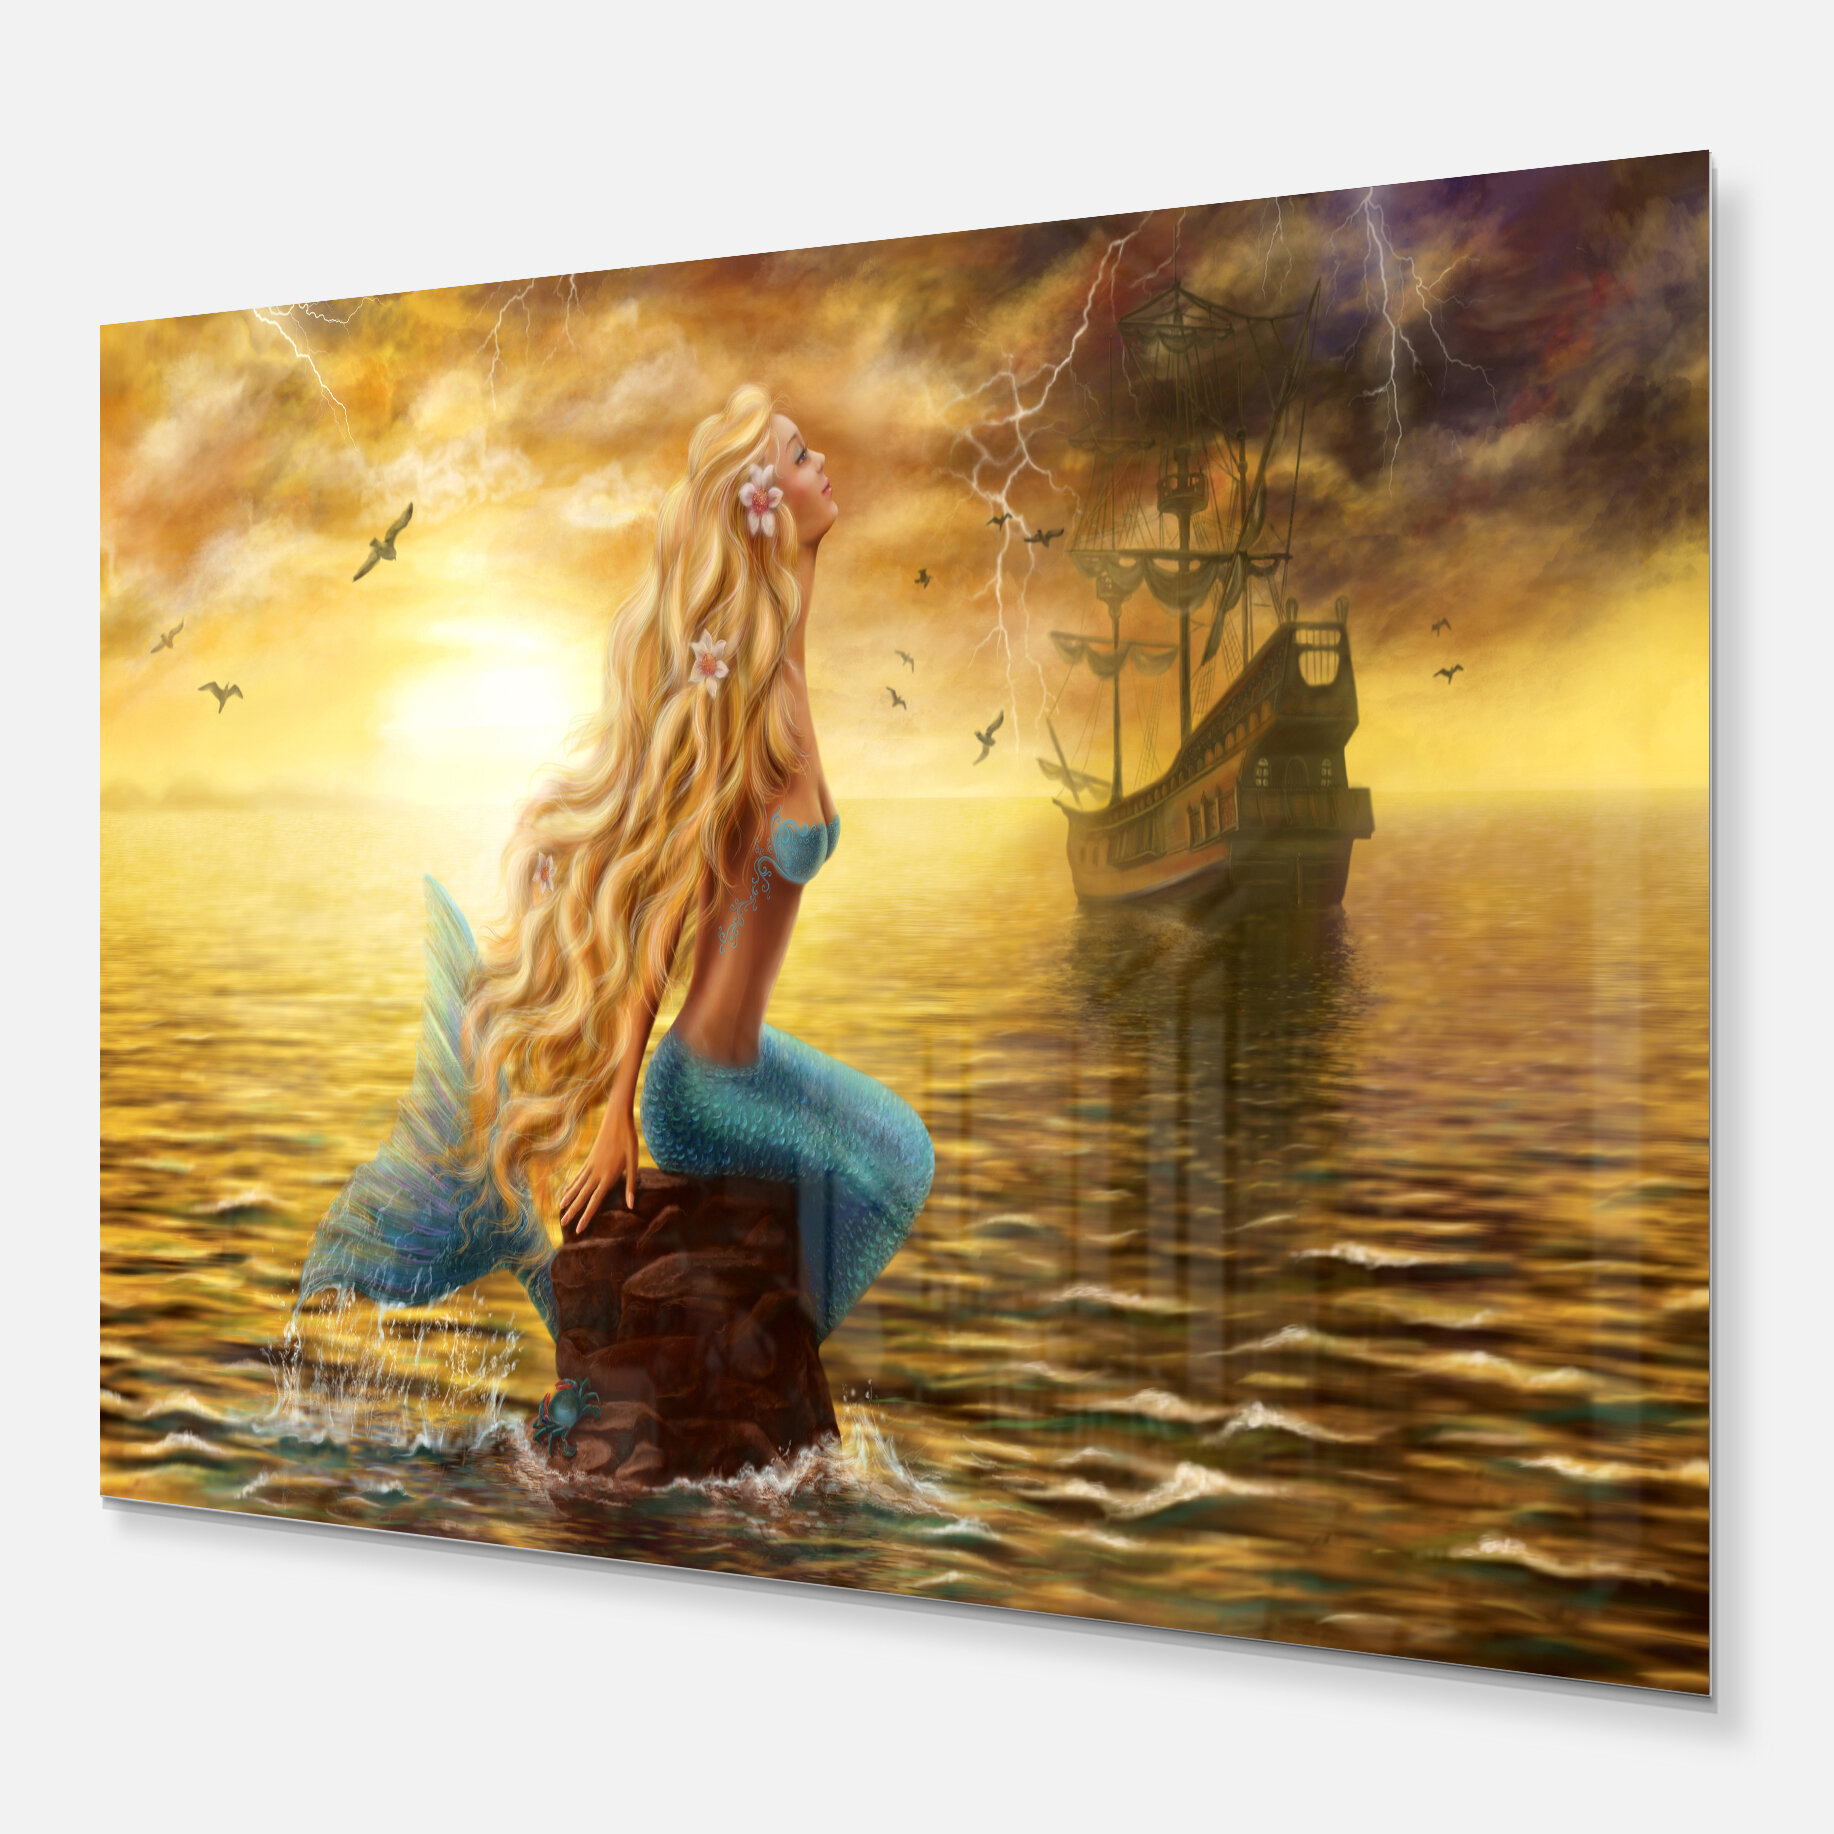 DesignArt \'Sea Mermaid with Ghost Ship\' Graphic Art on Wrapped ...